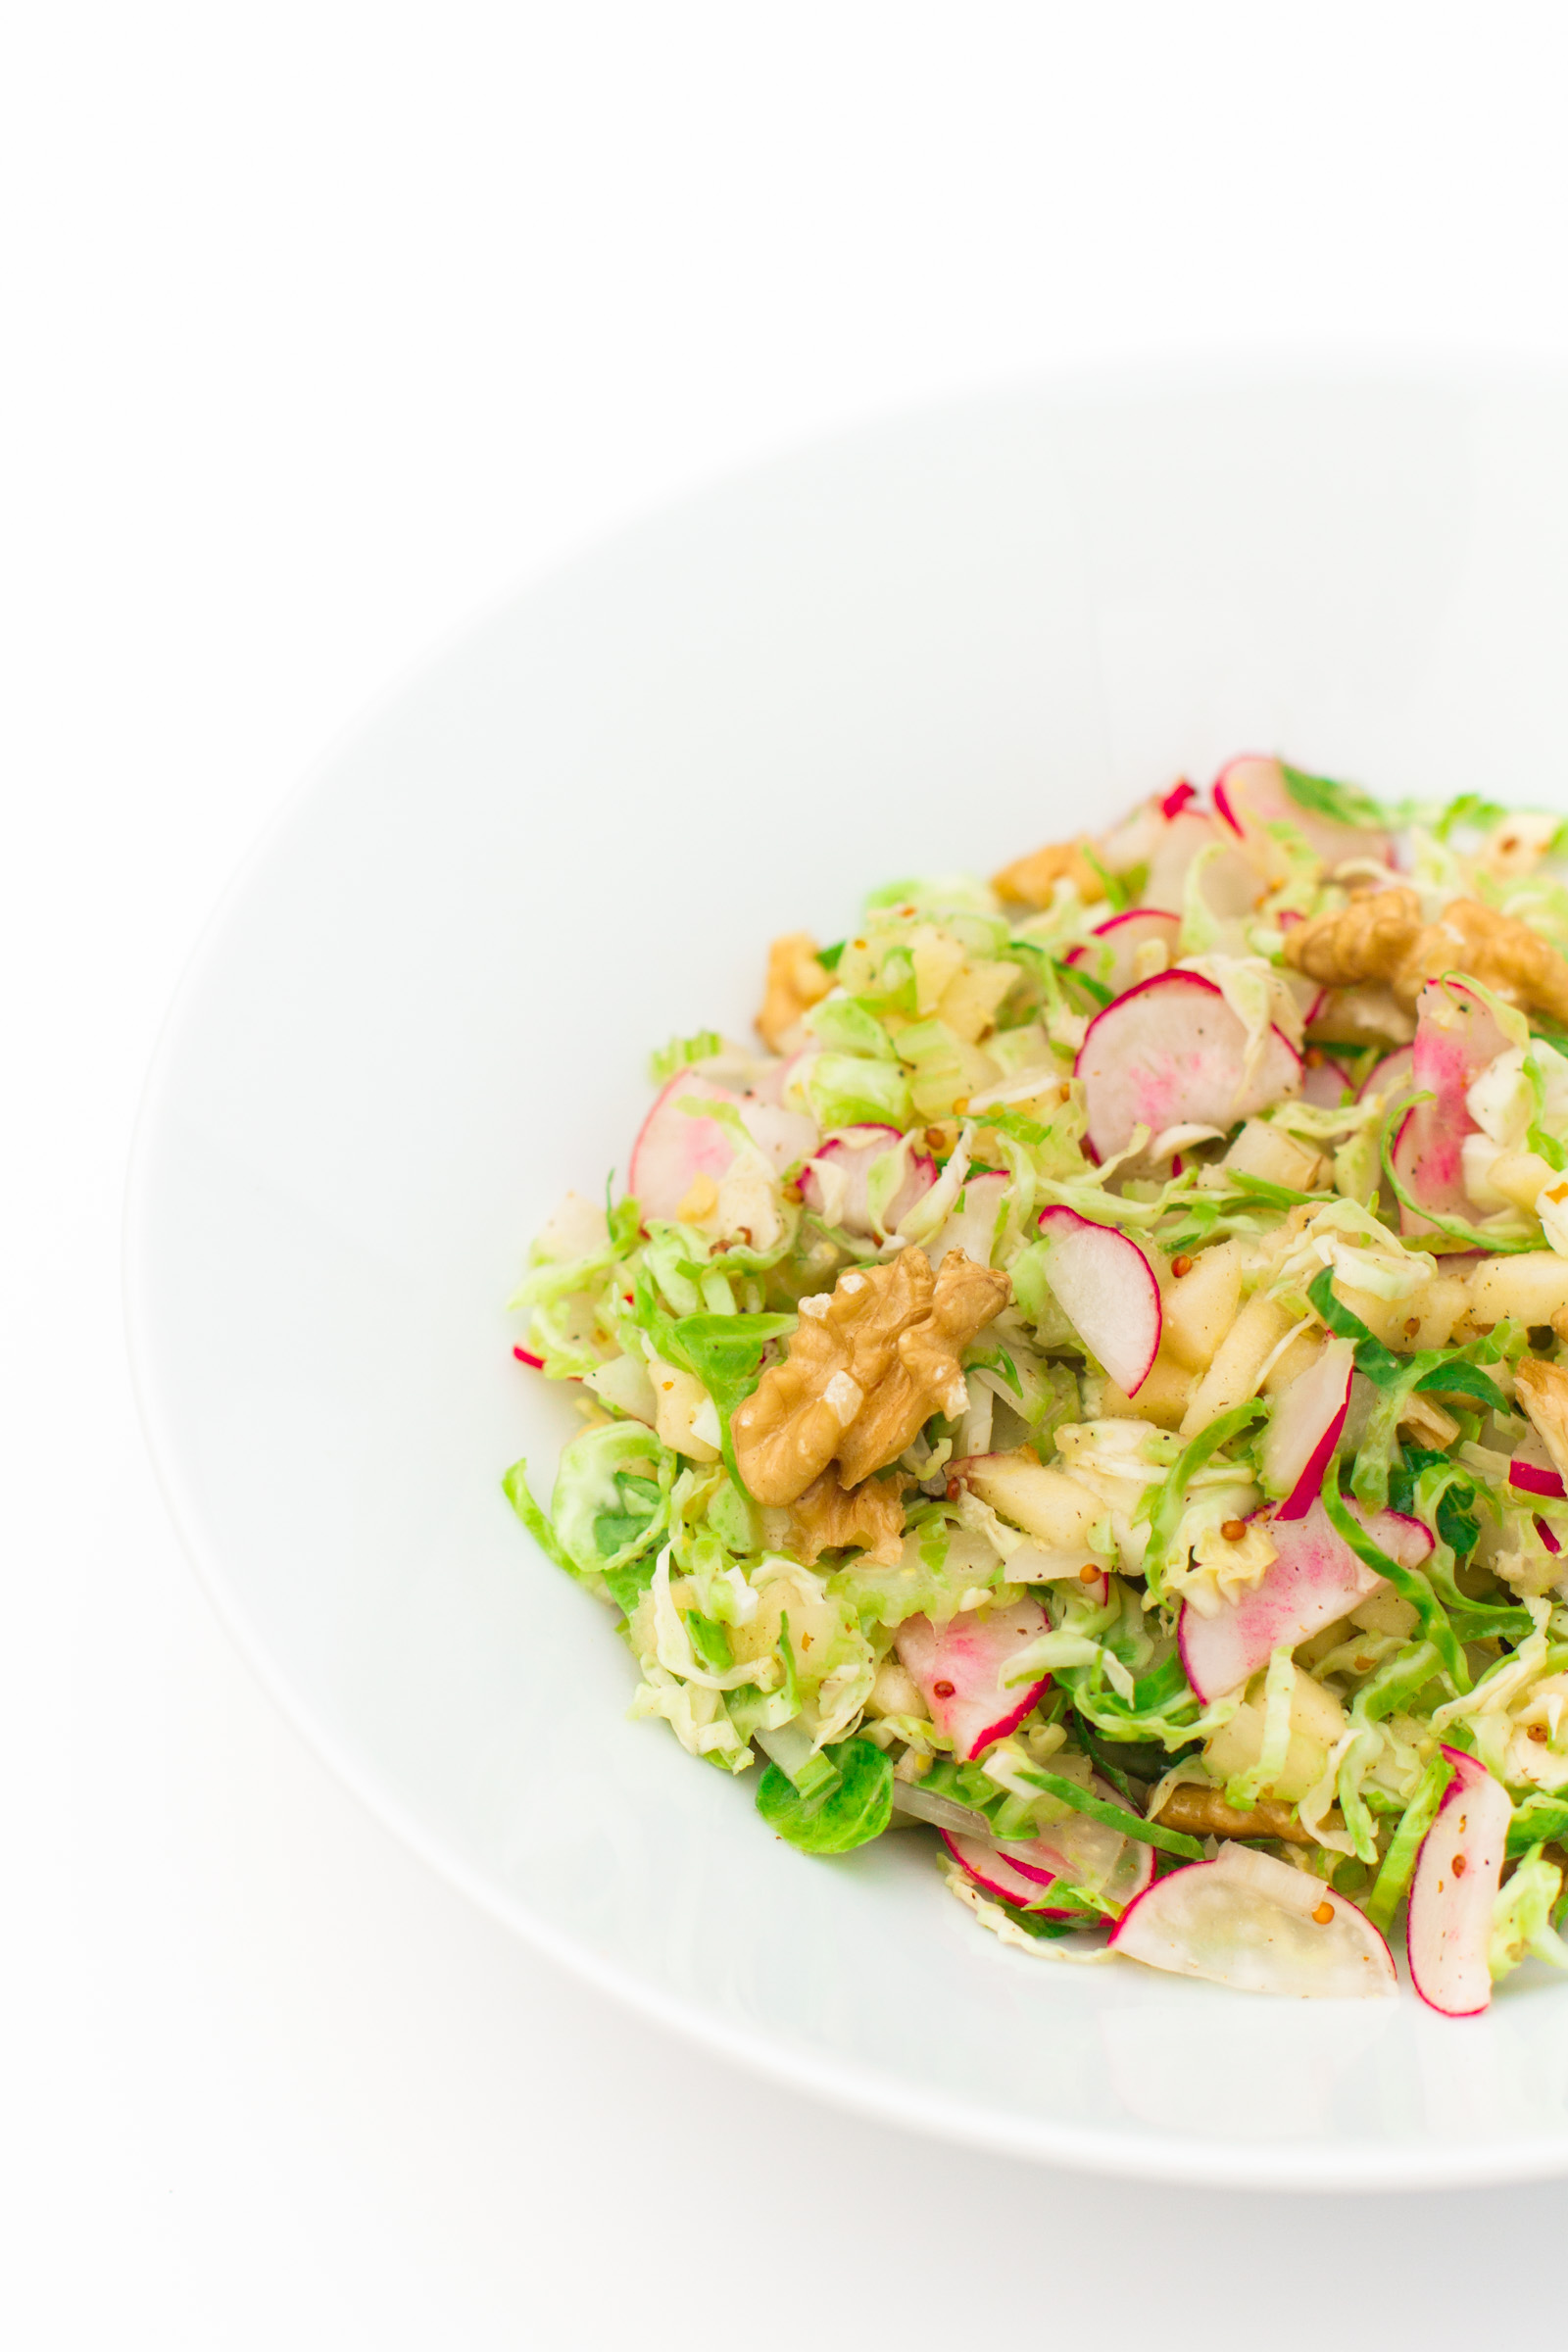 Salad of shaved Brussels sprouts with apples and walnuts